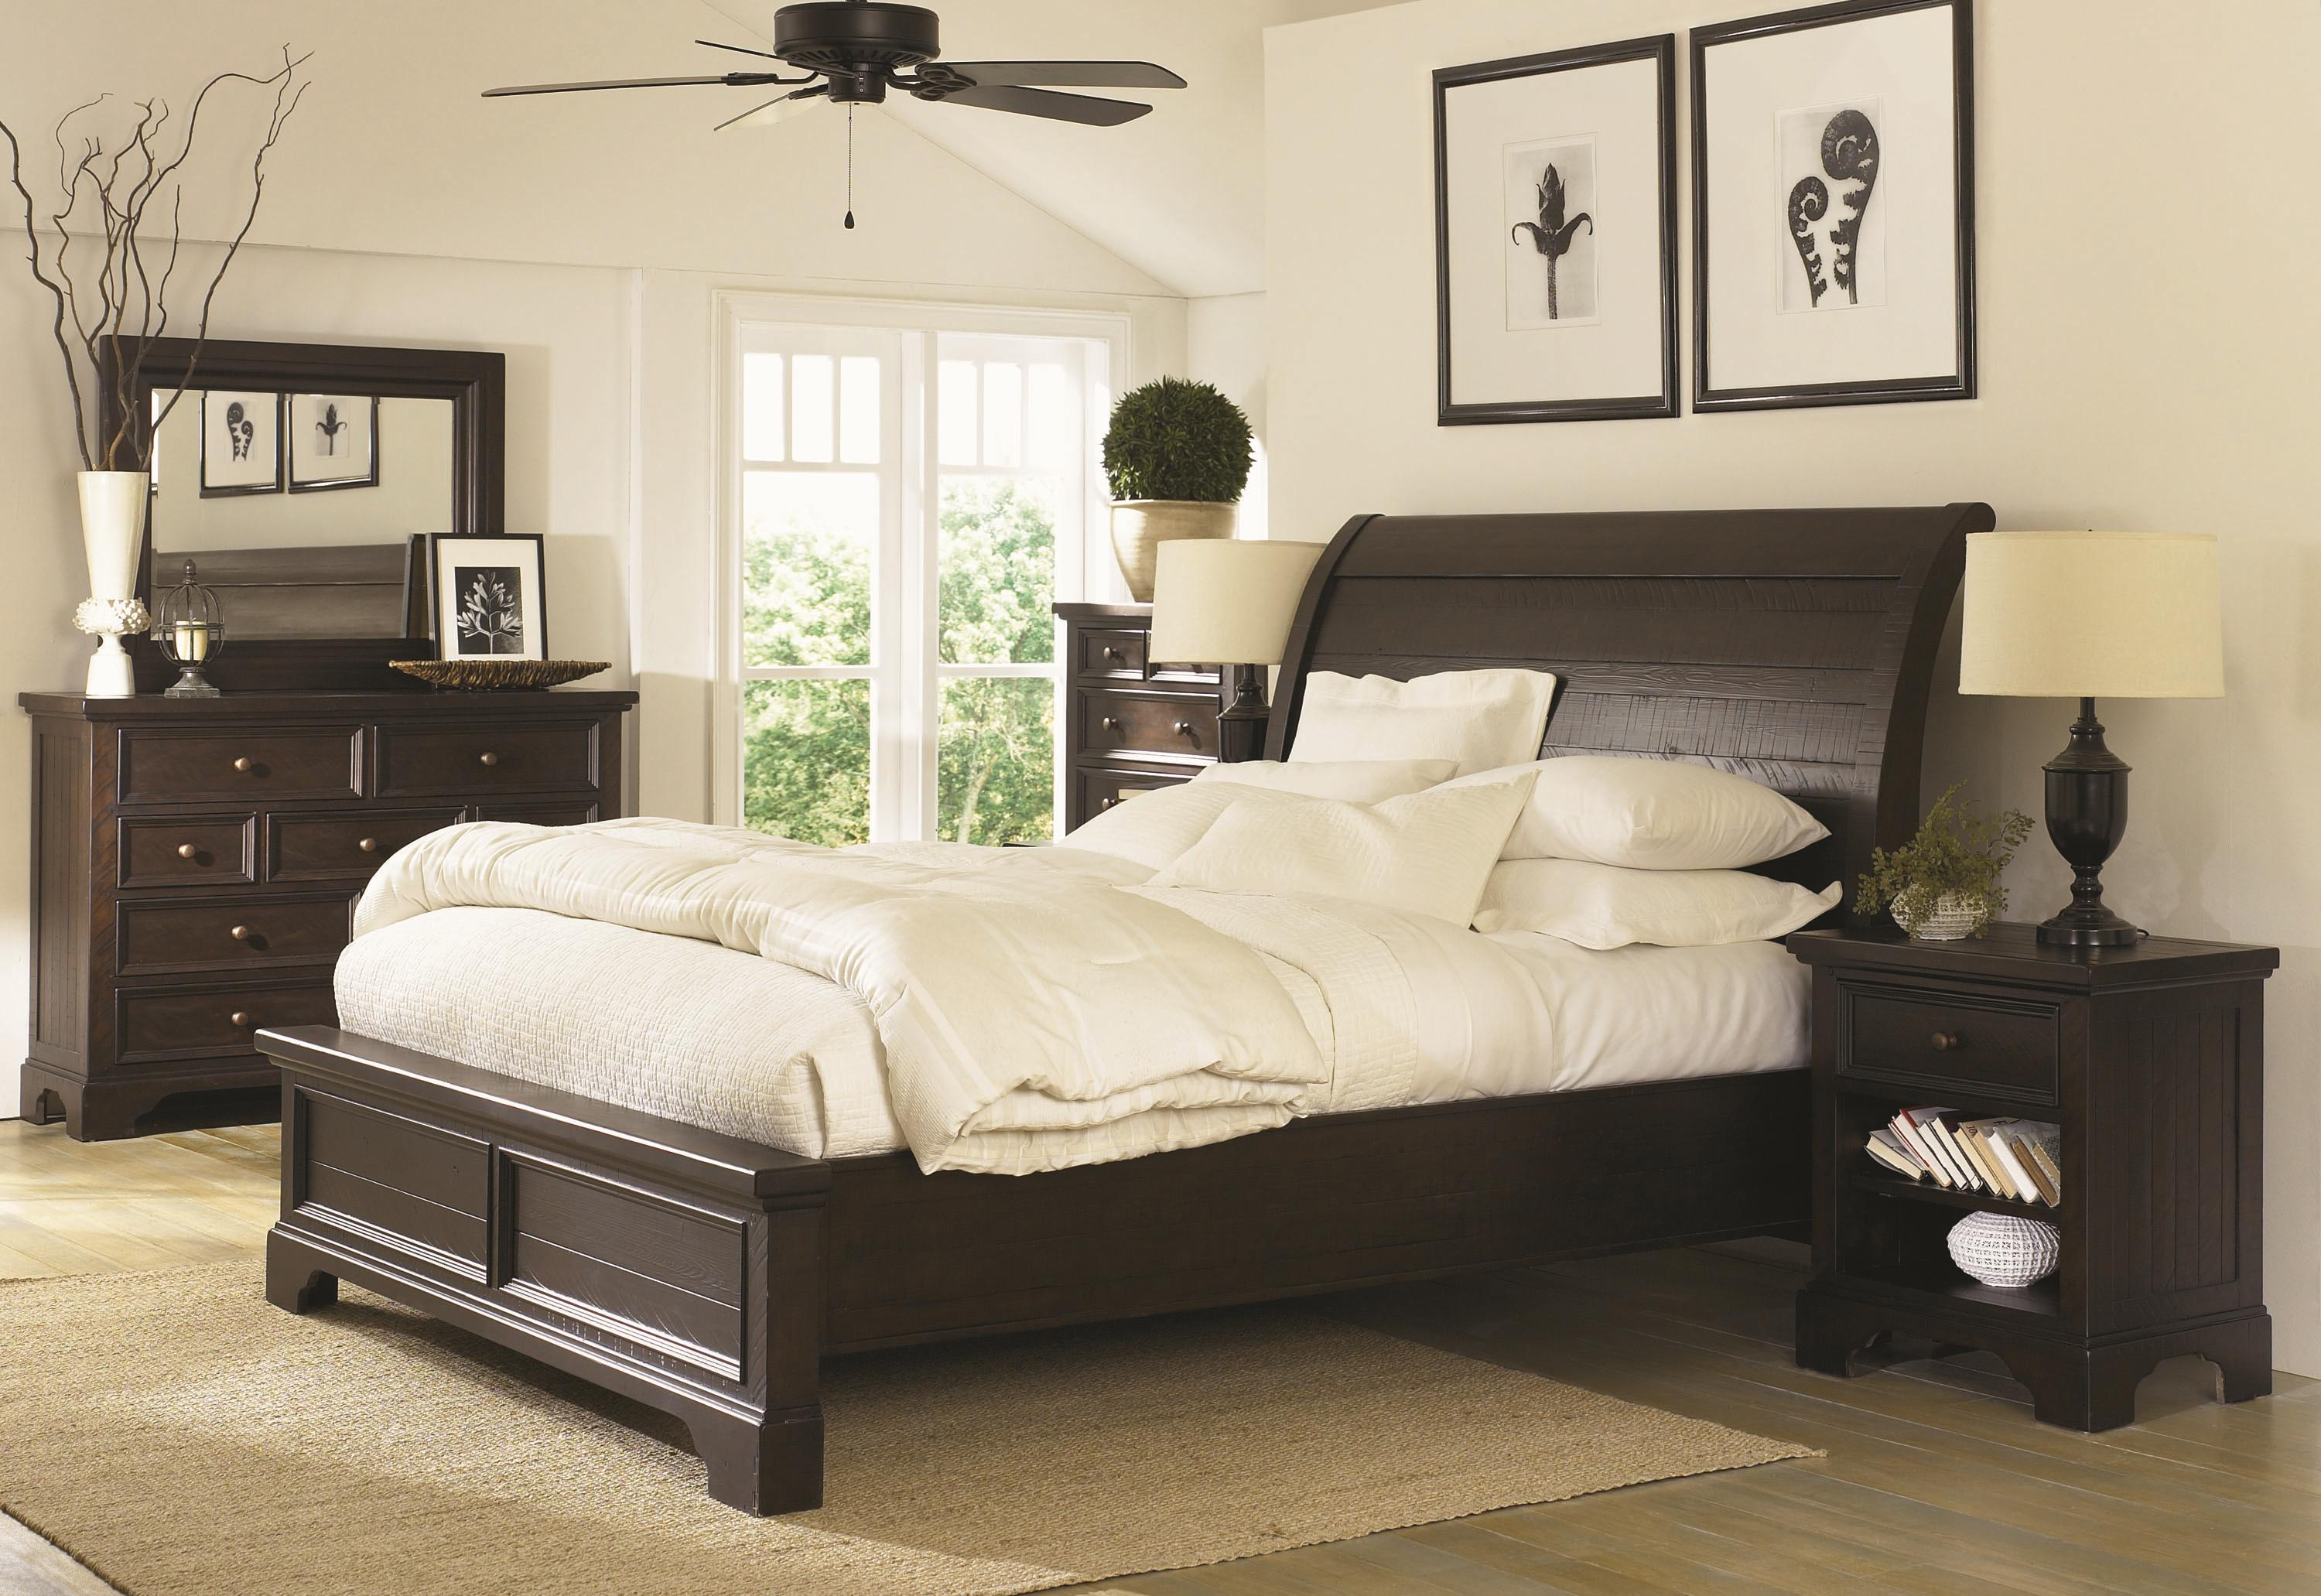 California king size sleigh bed with adjustable bed slats for Neutral color furniture